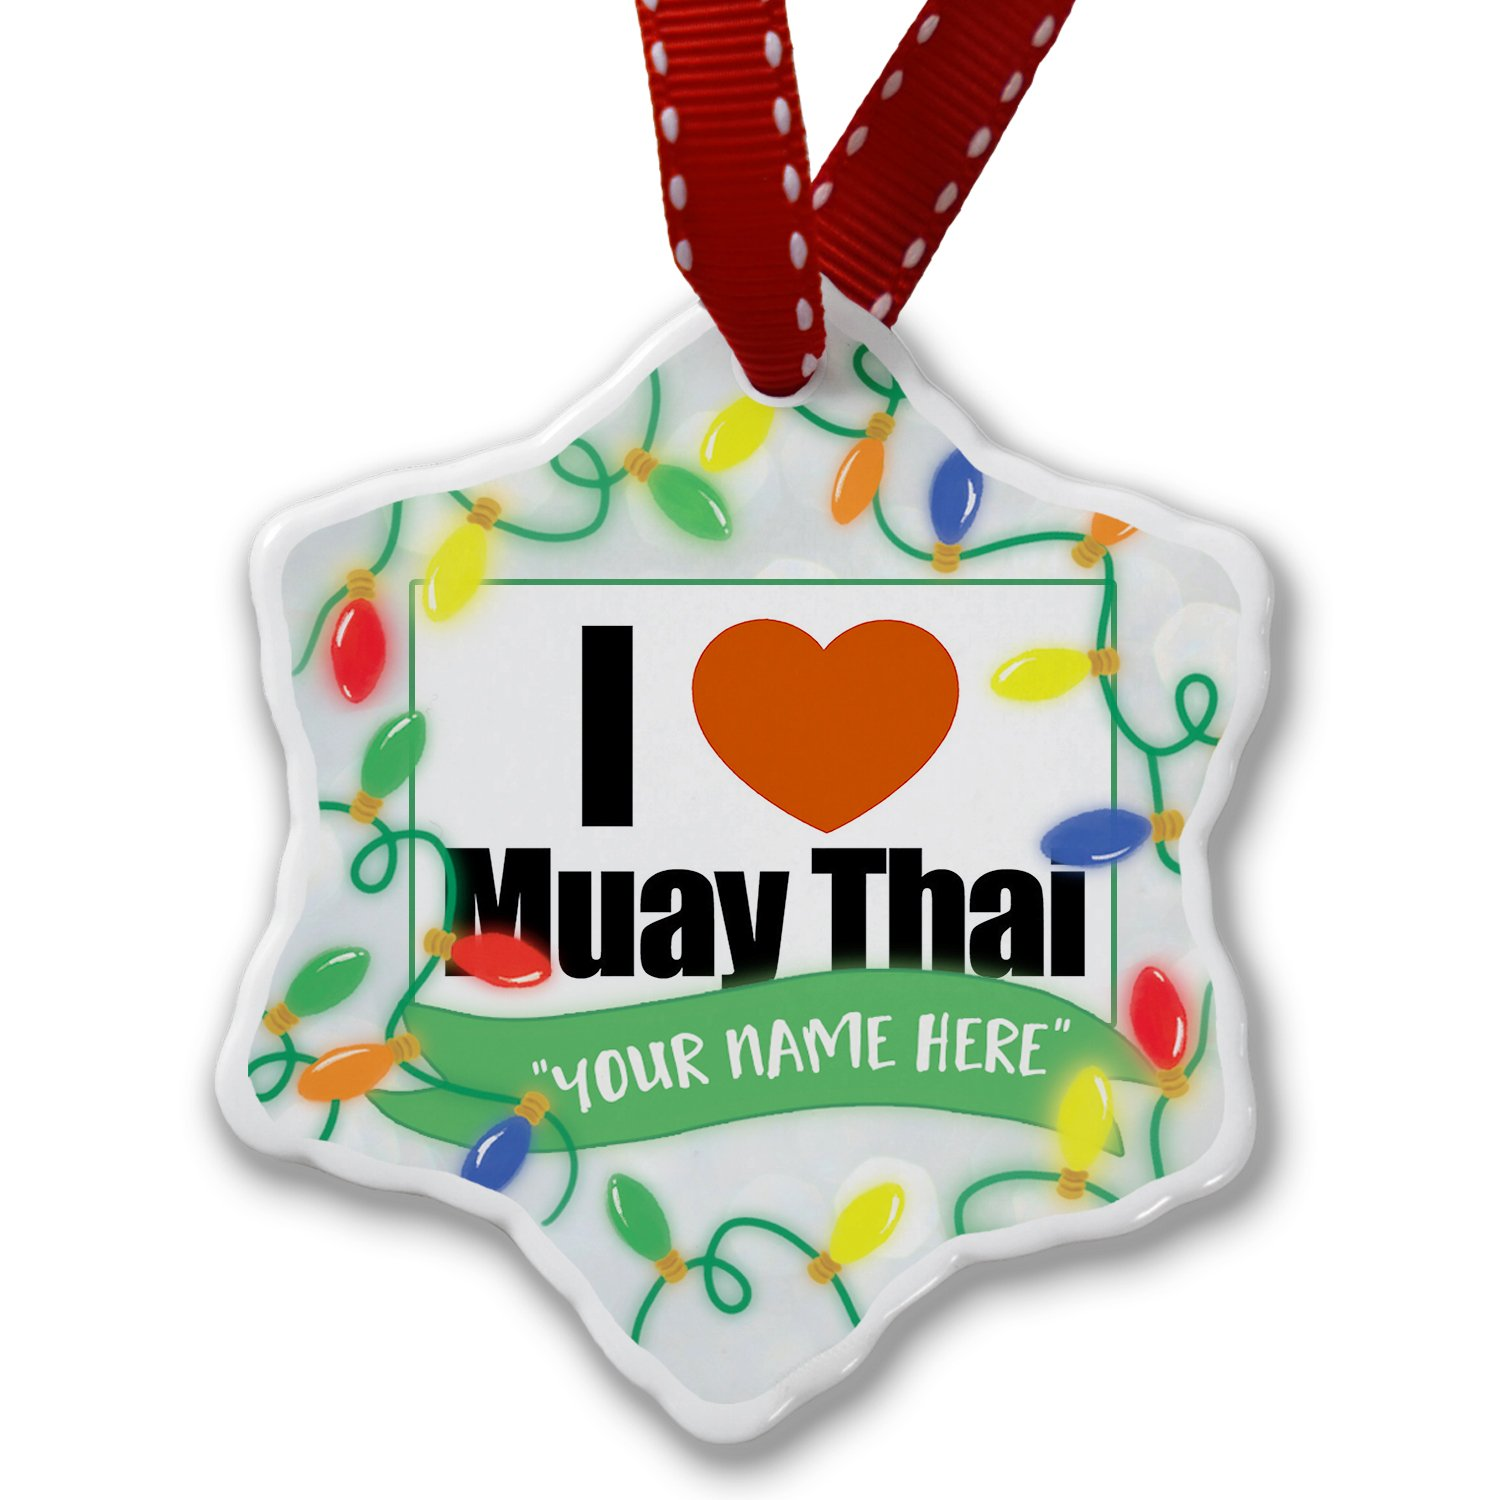 Personalized Name Christmas Ornament, I Love Muay Thai NEONBLOND